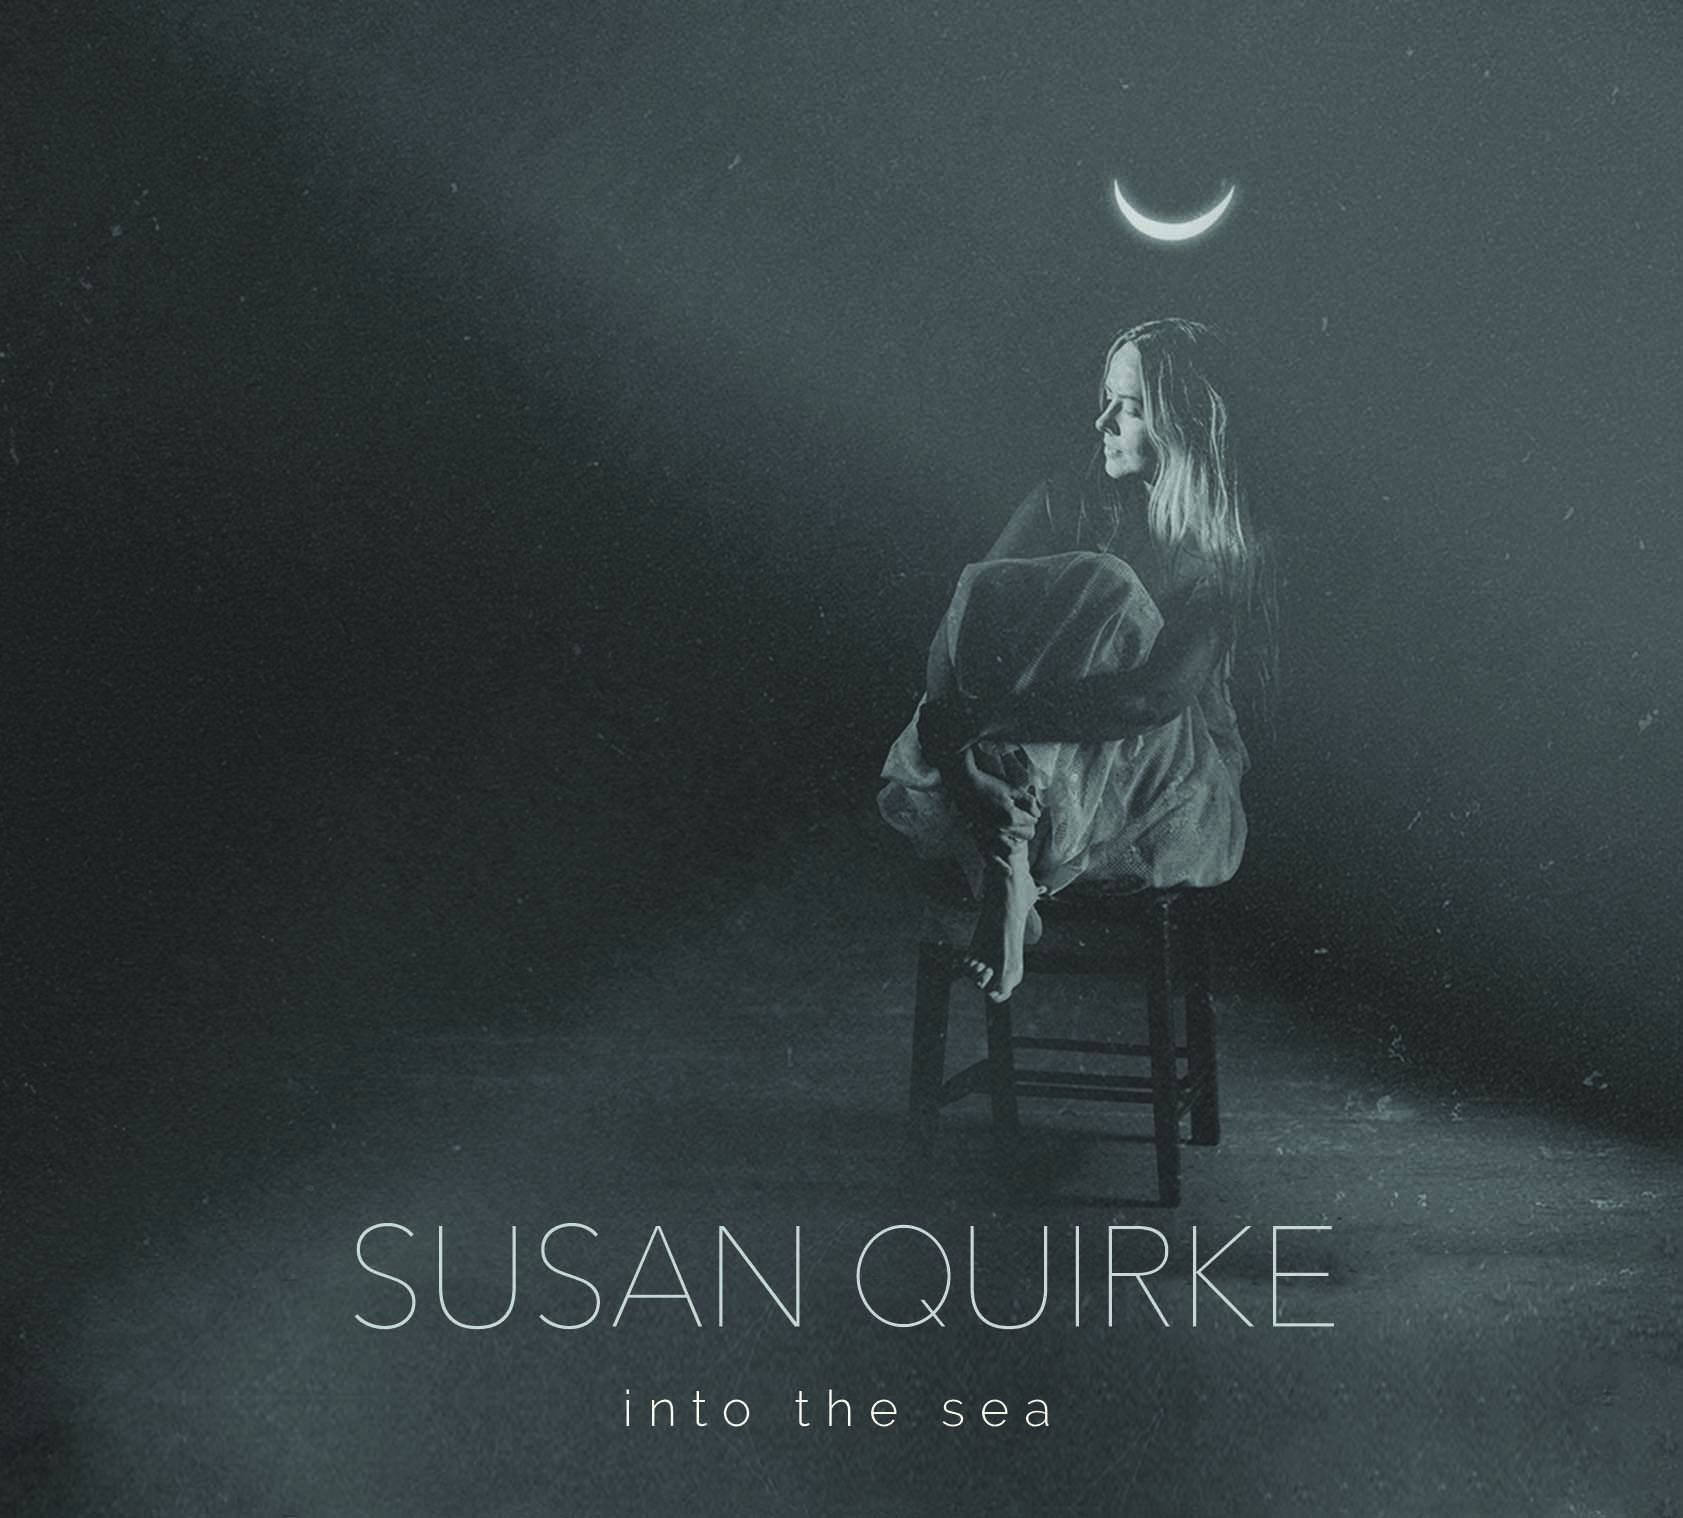 Susan Quirke debut album - Into the Sea is a concept album that plays upon the metaphor of the sea as a sea of consciousness.